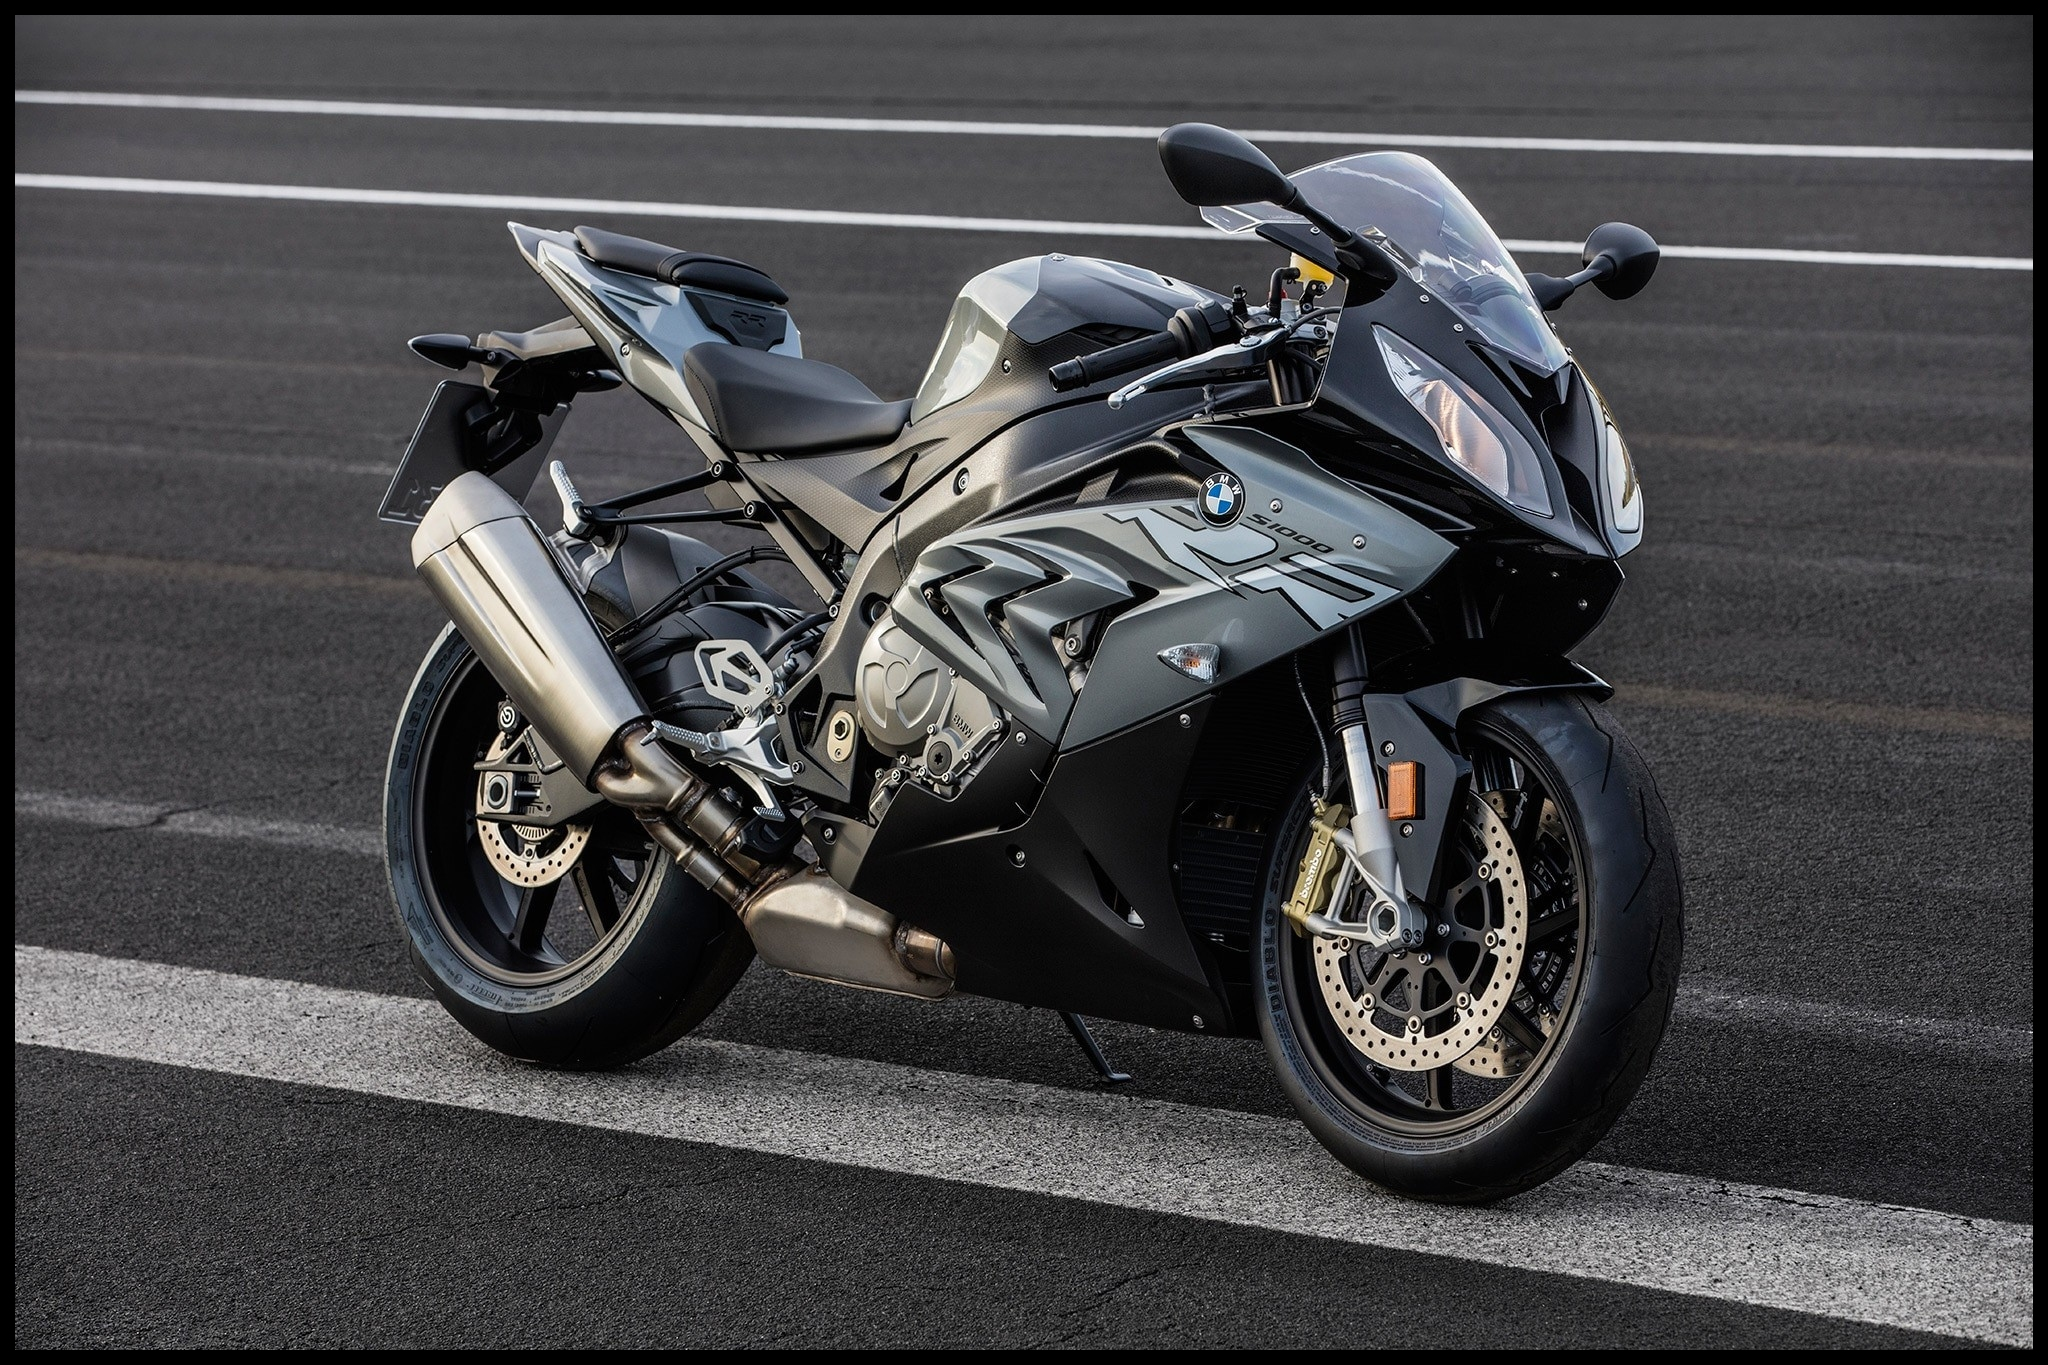 2019 Bmw Rr Best 2019 Bmw S1000rr Inspirational 2016 Bmw S1000rr First Ride Review